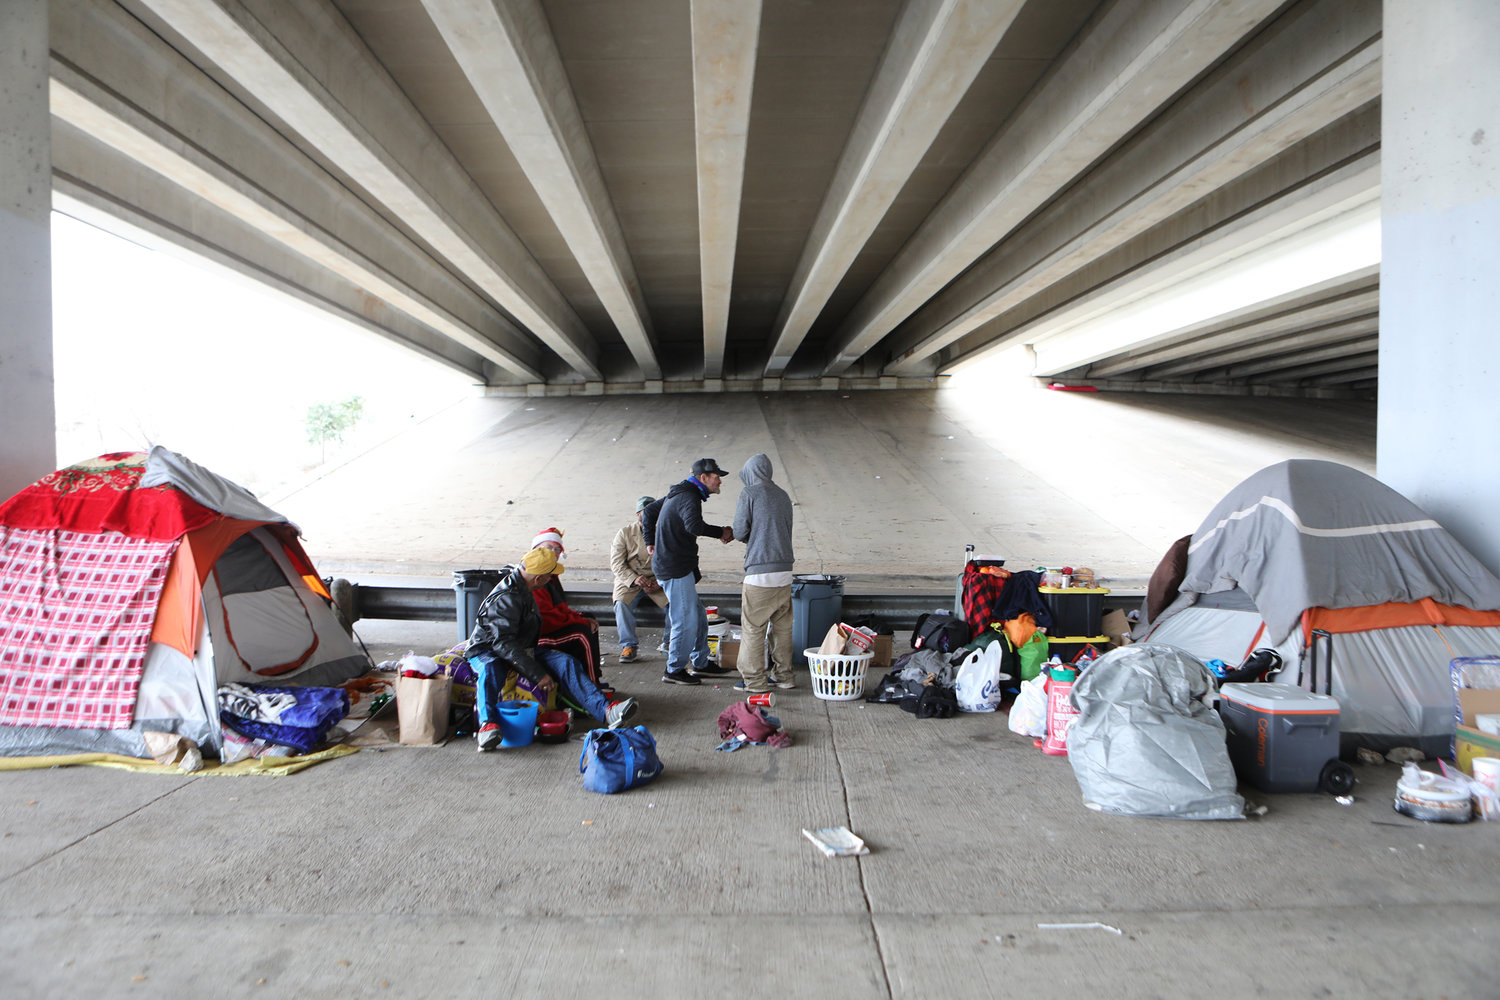 Homeless men are seen under a bridge on Christmas day in Austin, Texas. Catholic Charities staff are warning that the coronavirus pandemic presents a stark threat to the U.S. homeless population.